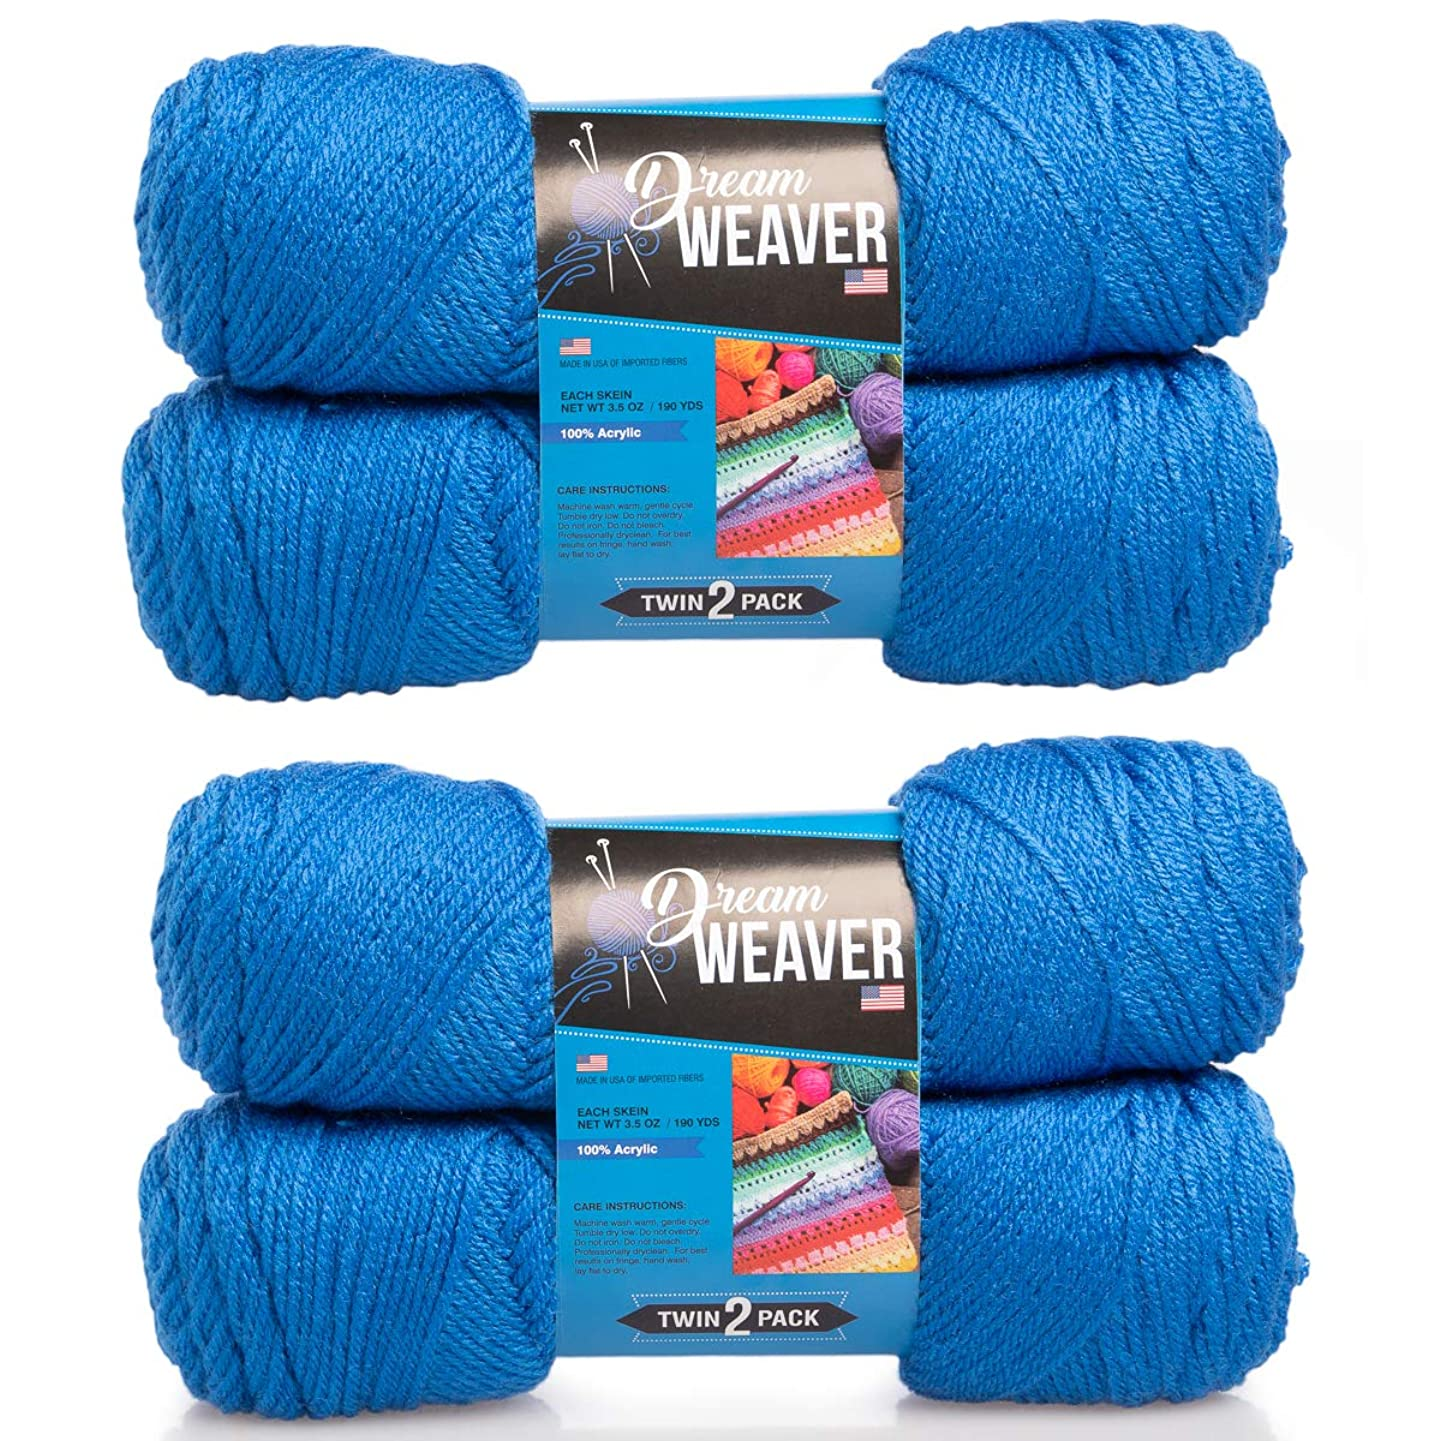 Dream Weaver 4 Pack Solid Color 100% Acrylic Soft Royal Blue Yarn for Knitting Crocheting Medium Worsted #4